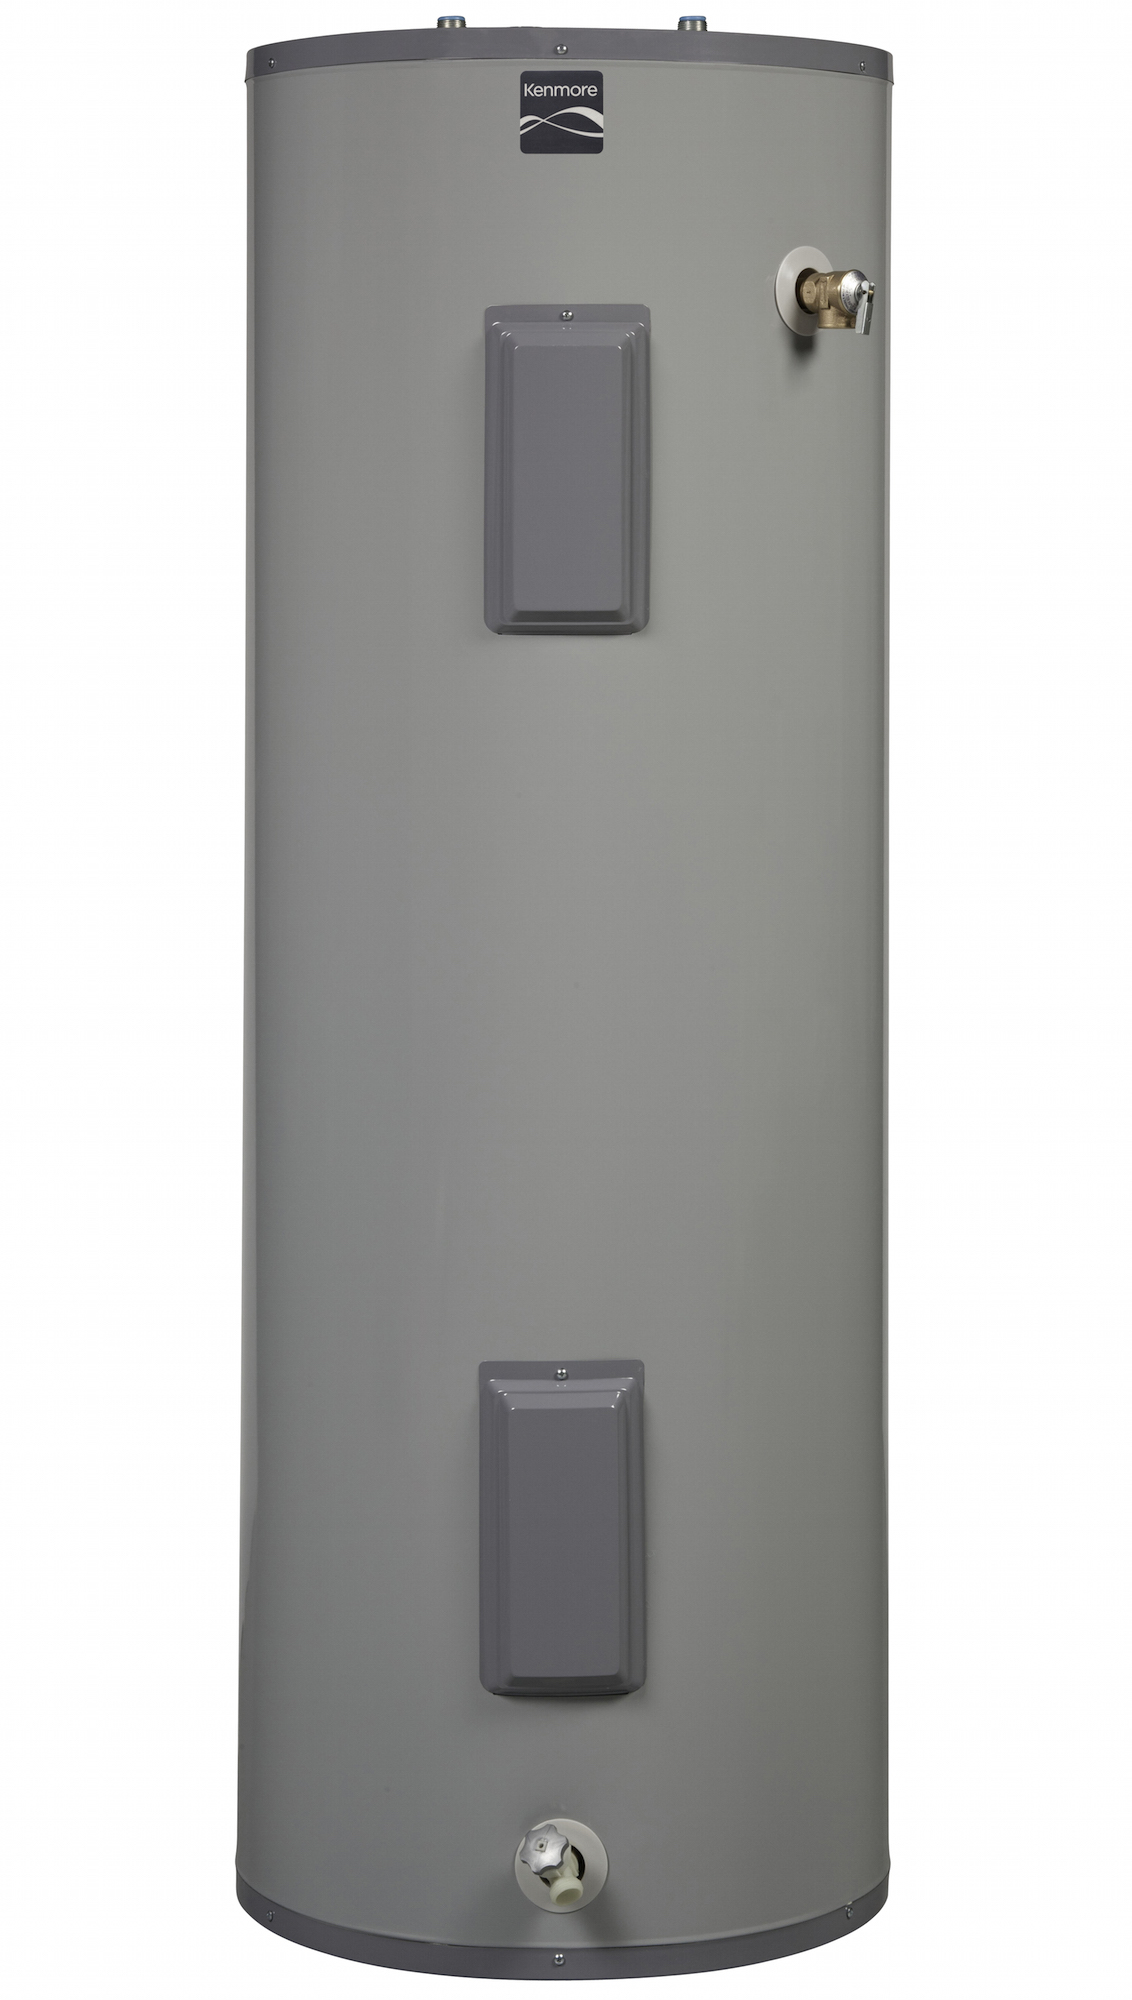 Kenmore 58940 40 gal. 9-Year Tall Electric Water Heater